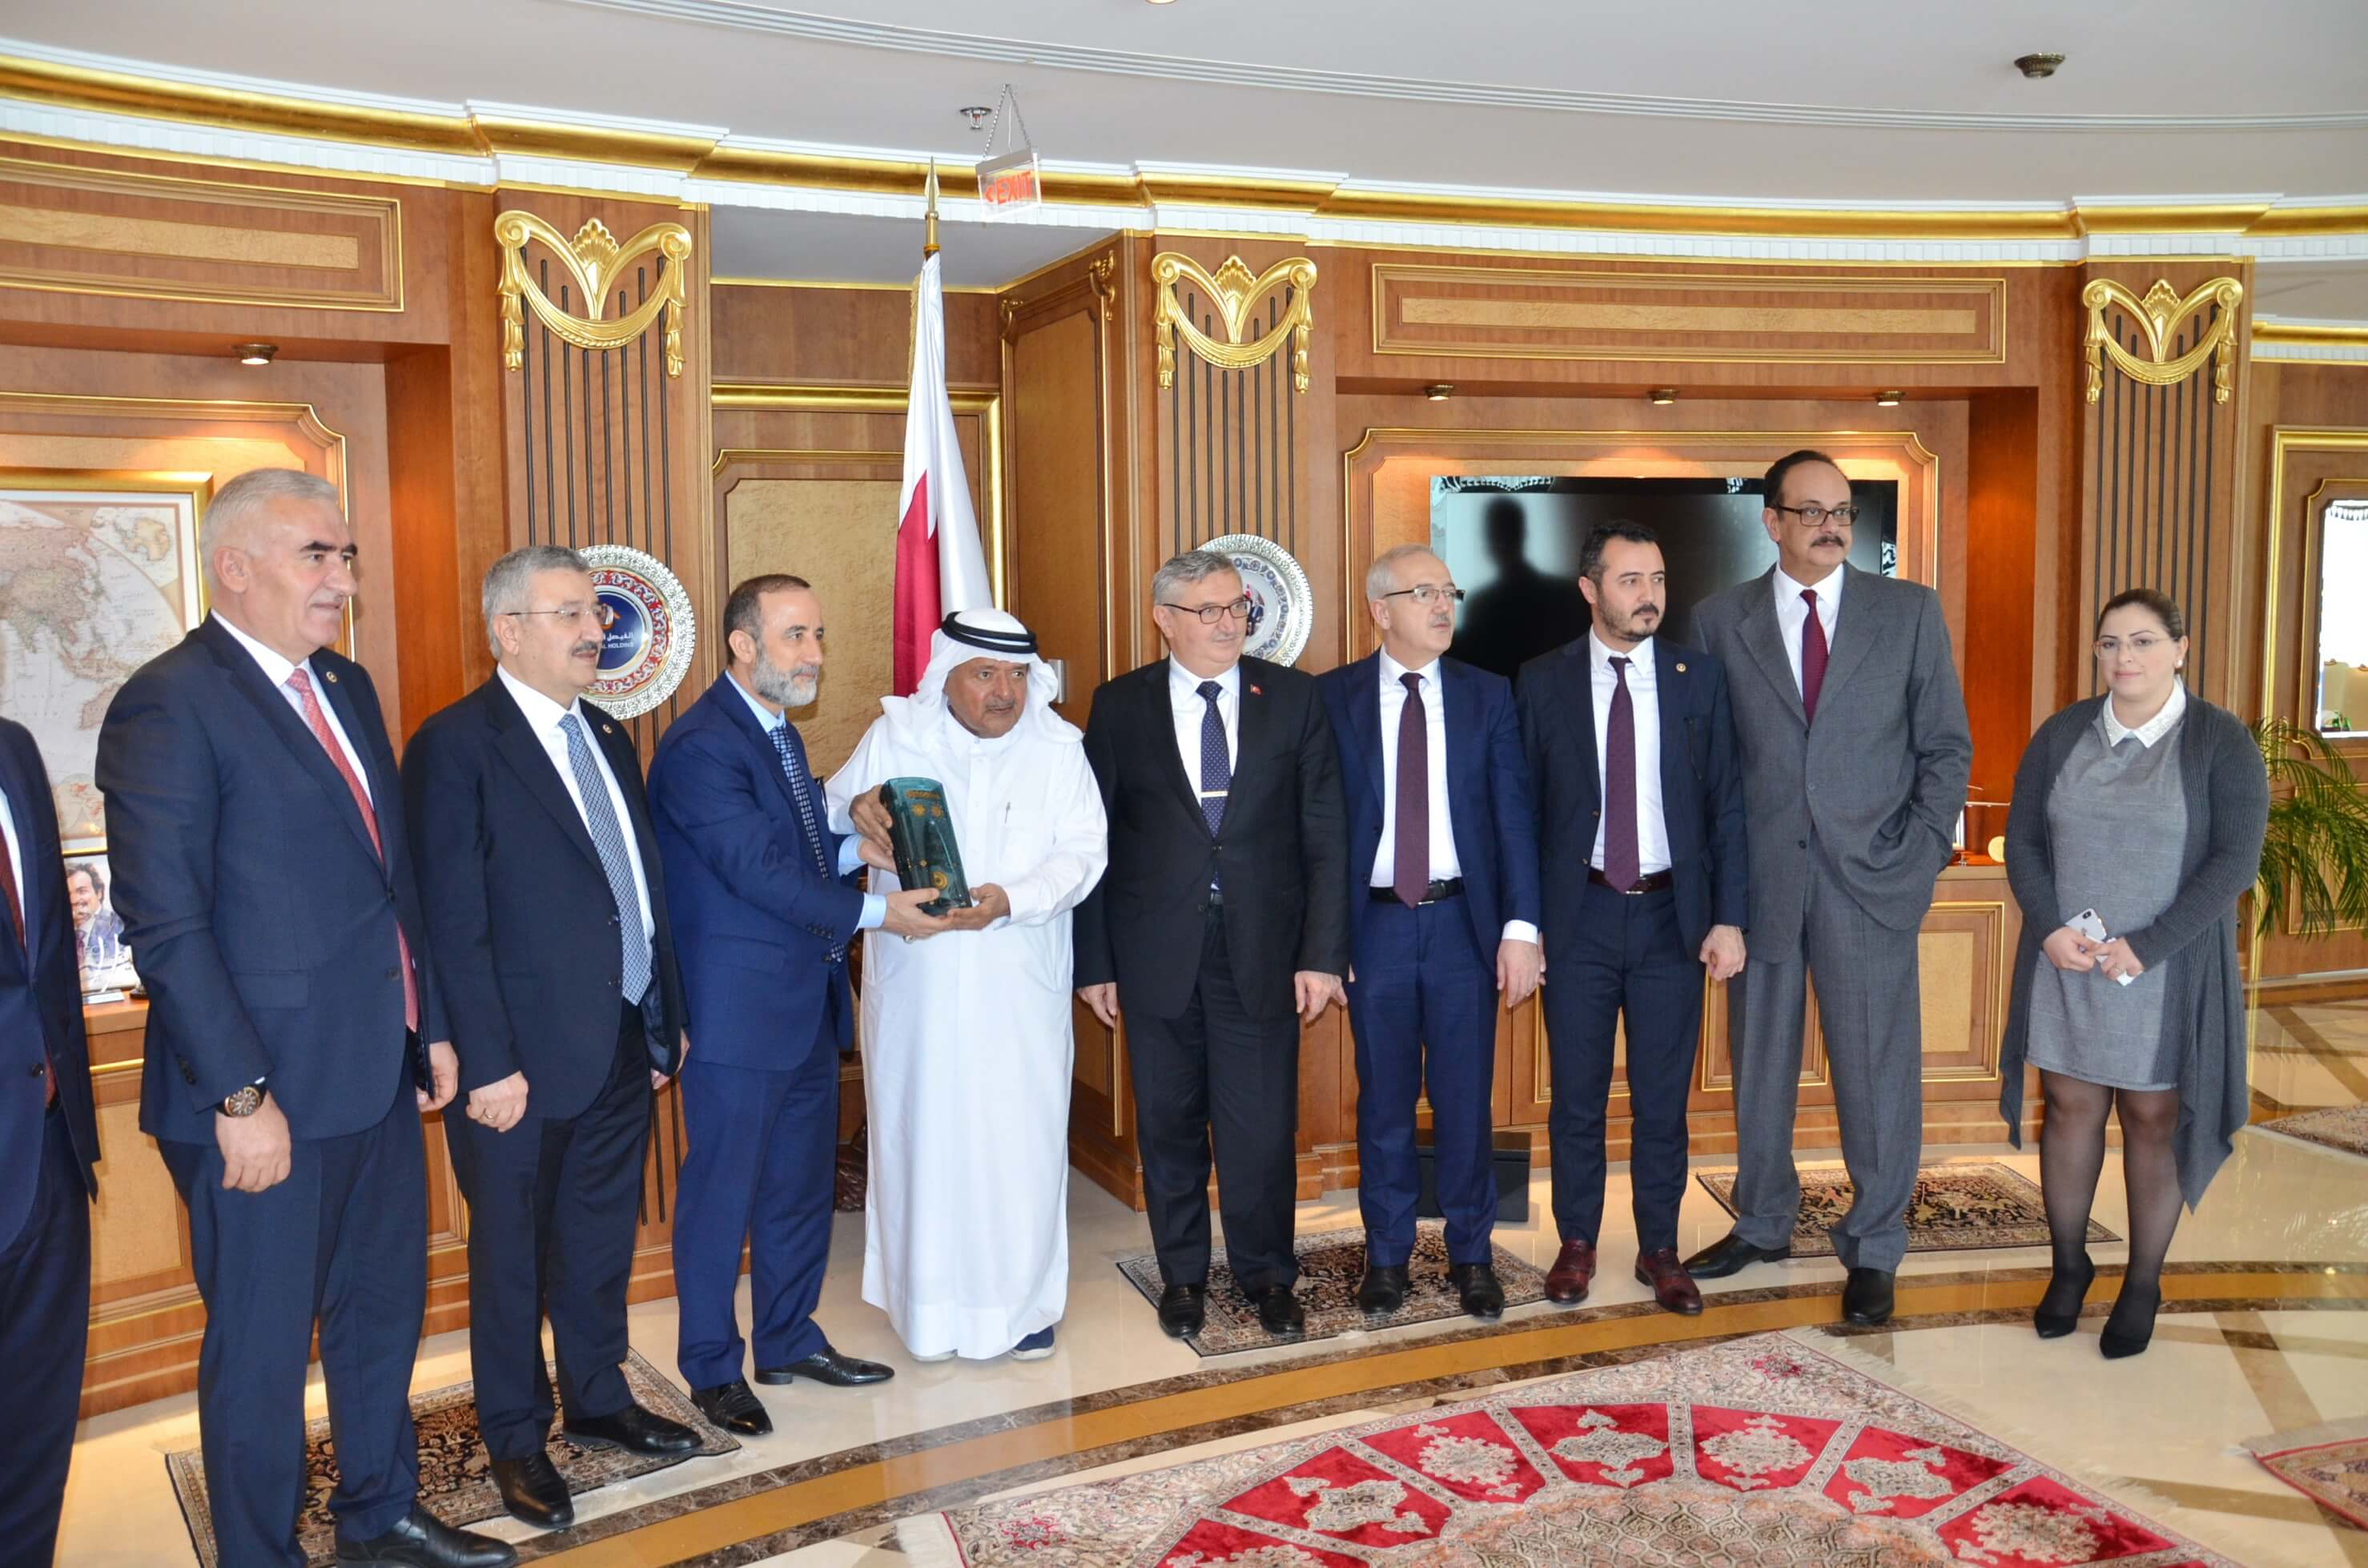 QBA Chairman's meeting with H.E MP Vahit Kiler, chairman of the Turkish-Qatari Parliamentary Friendship Group and his accompanying delegation